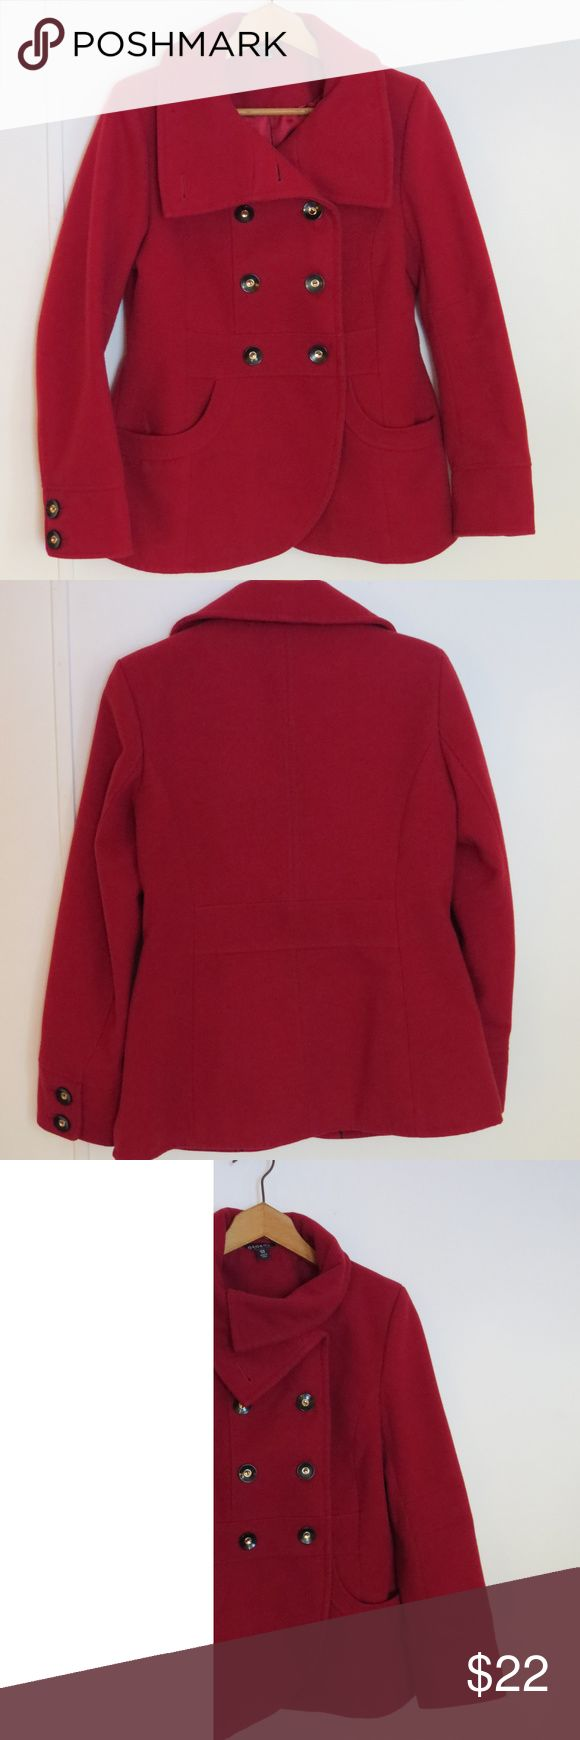 George Crimson Red Double Breasted Peacoat Small George Womens Peacoat Size Small 4-6 Crimson Red Double Breasted Lined Coat Color: Rich Plumb Machine Washable In Excellent Used Condition George Jackets & Coats Pea Coats